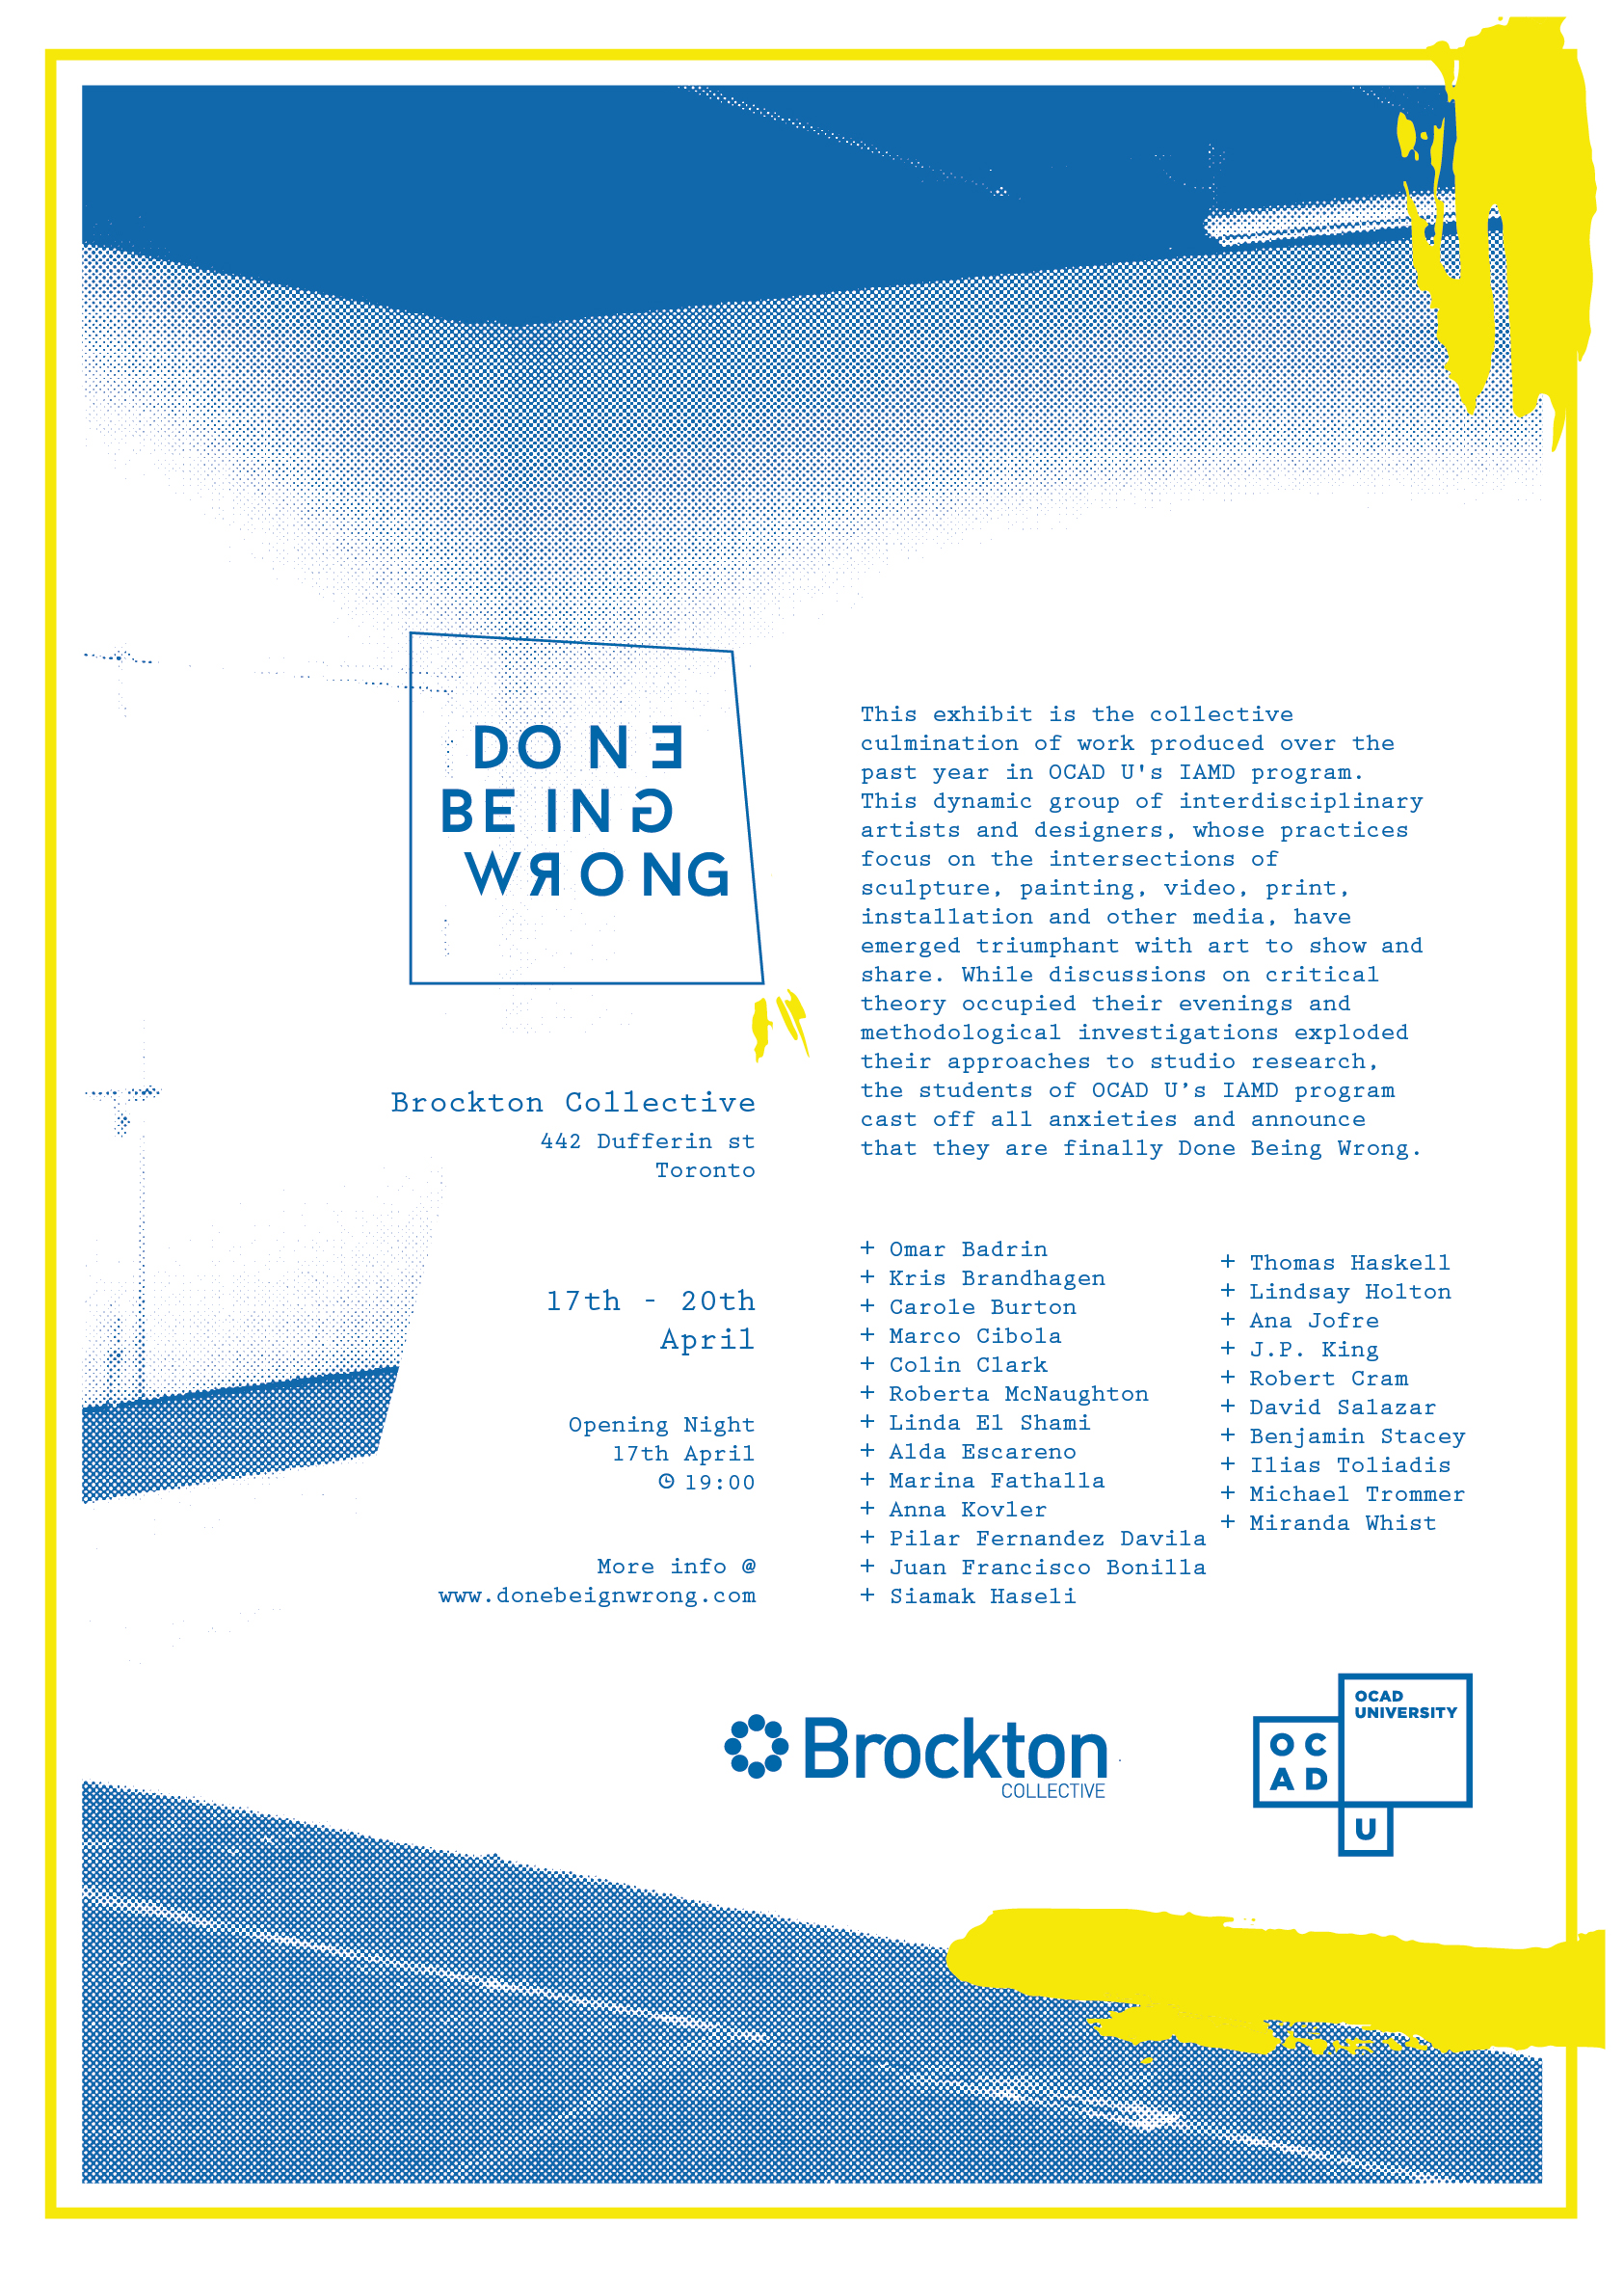 Brockton Presents: Done Being Wrong